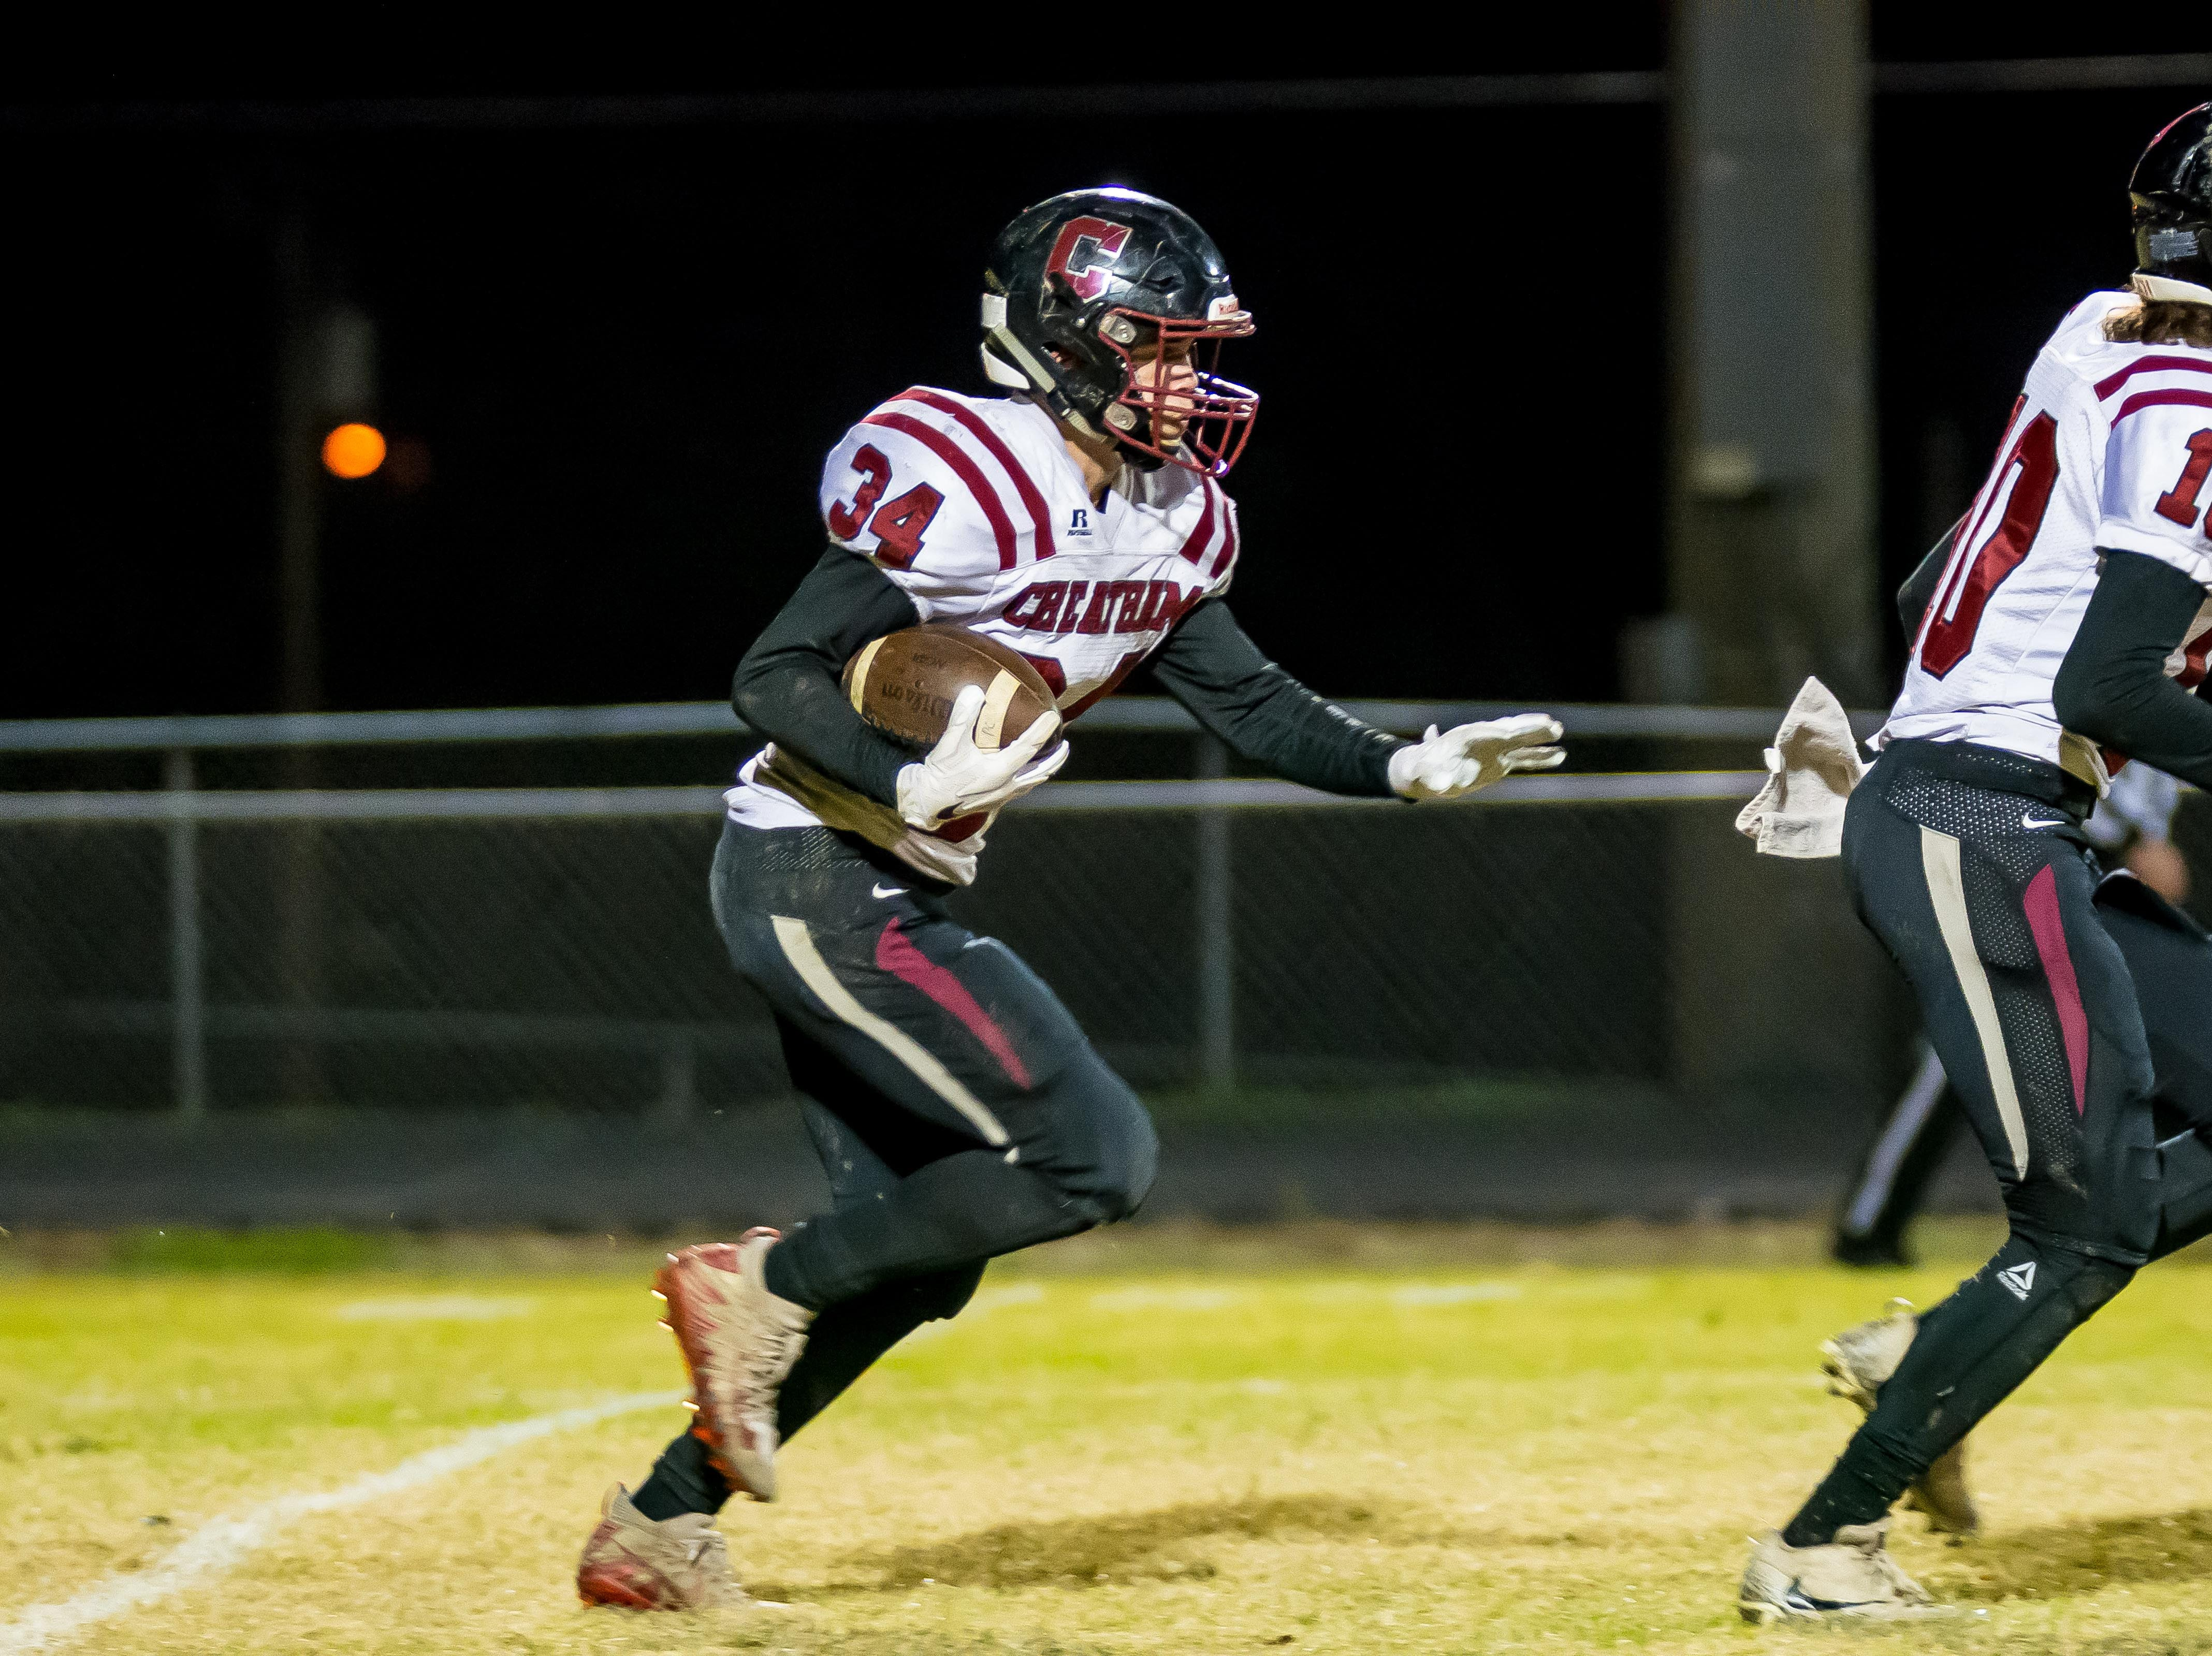 Cheatham senior Walker Bunce takes off on a kickoff return.